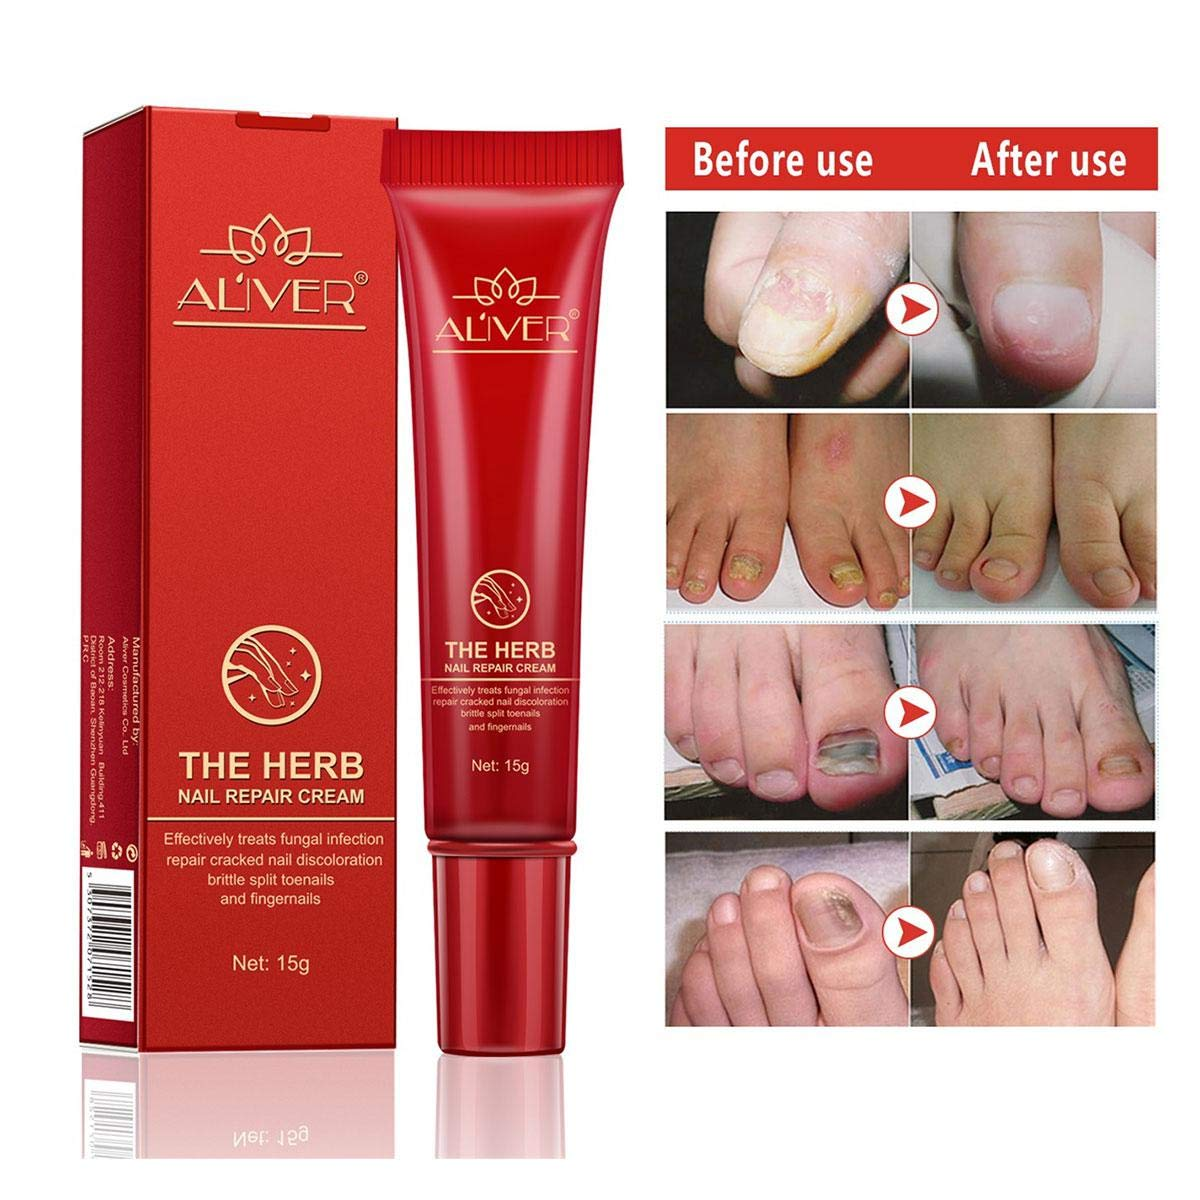 Fungus Stop, Foot Nail Cream with Antifungal Treatment Fits for Nails Discolored Damaged Cracked Rough Brittle Spilt, Herb Nail Fungus Treatment for Women Men Elder leegoal